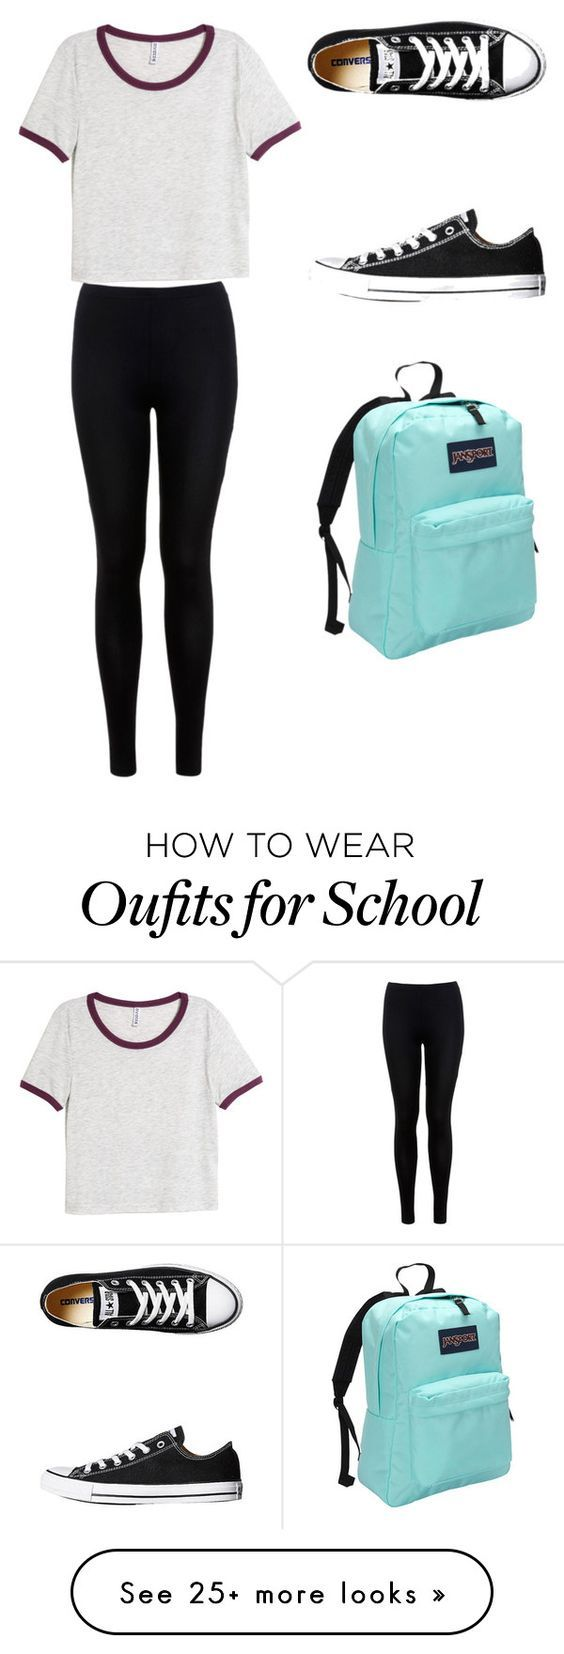 """""""School"""" by nk-4444 on Polyvore featuring H&M, Miss Selfridge, Converse and JanSport:"""